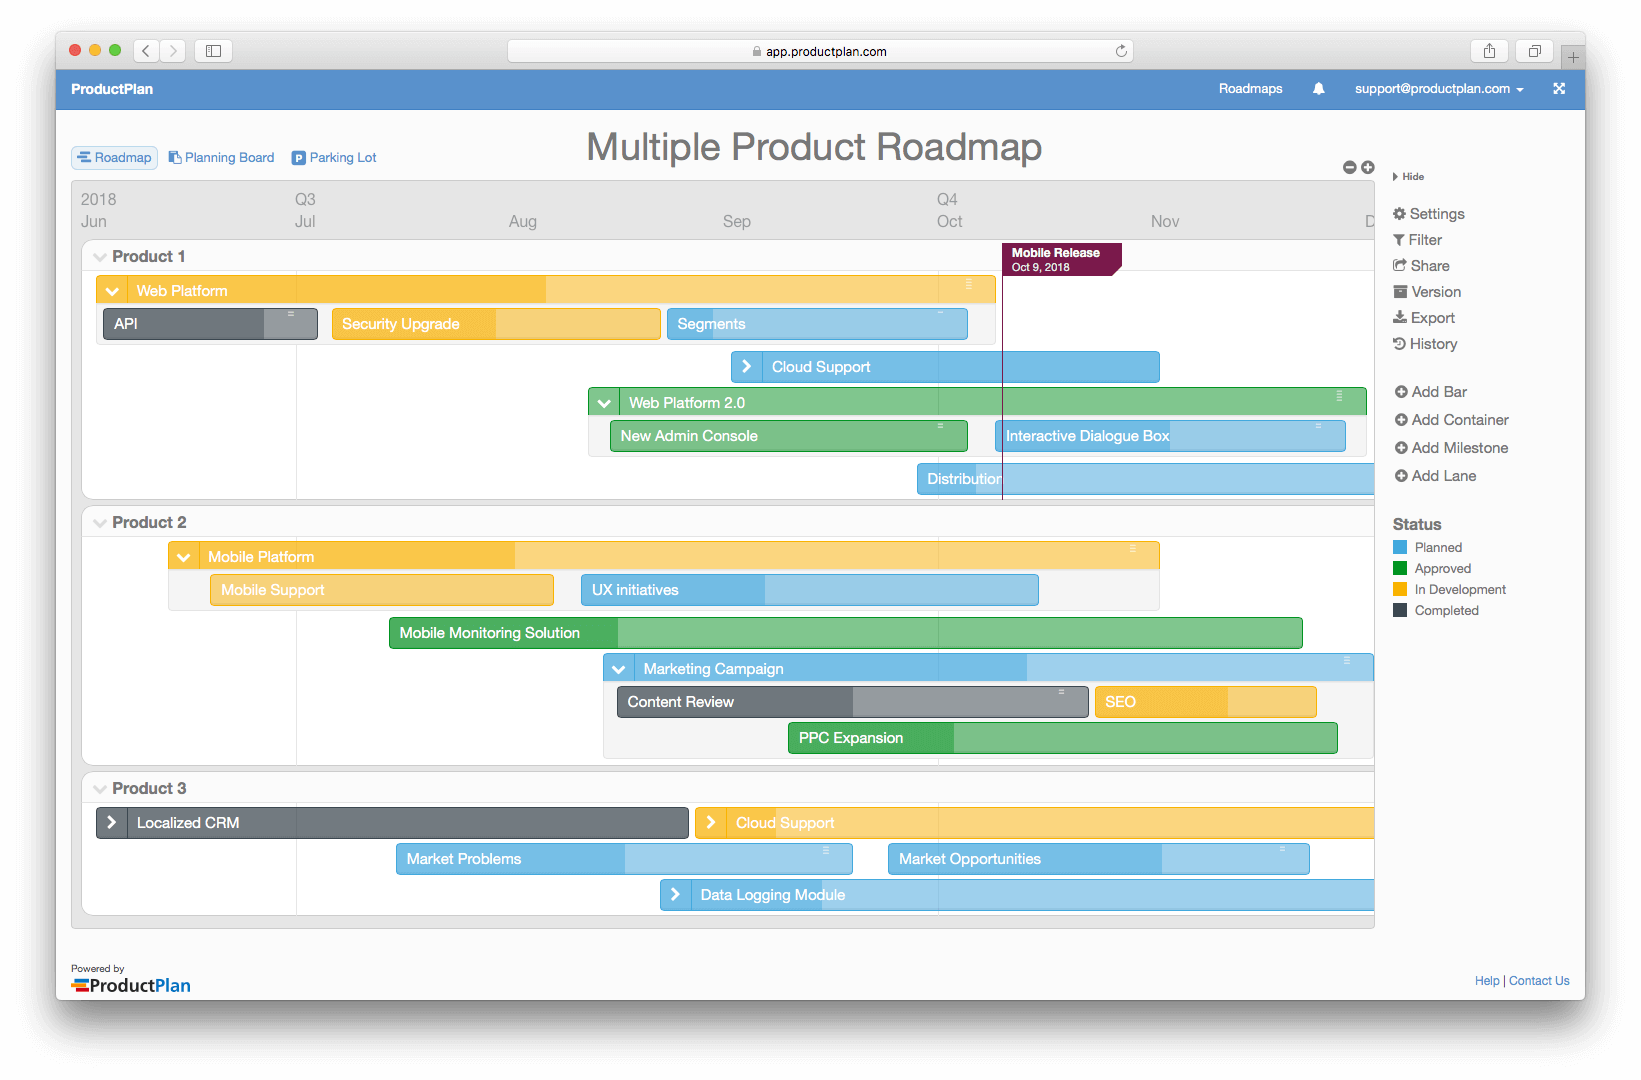 Multiple Product Roadmap Template - Company roadmap template